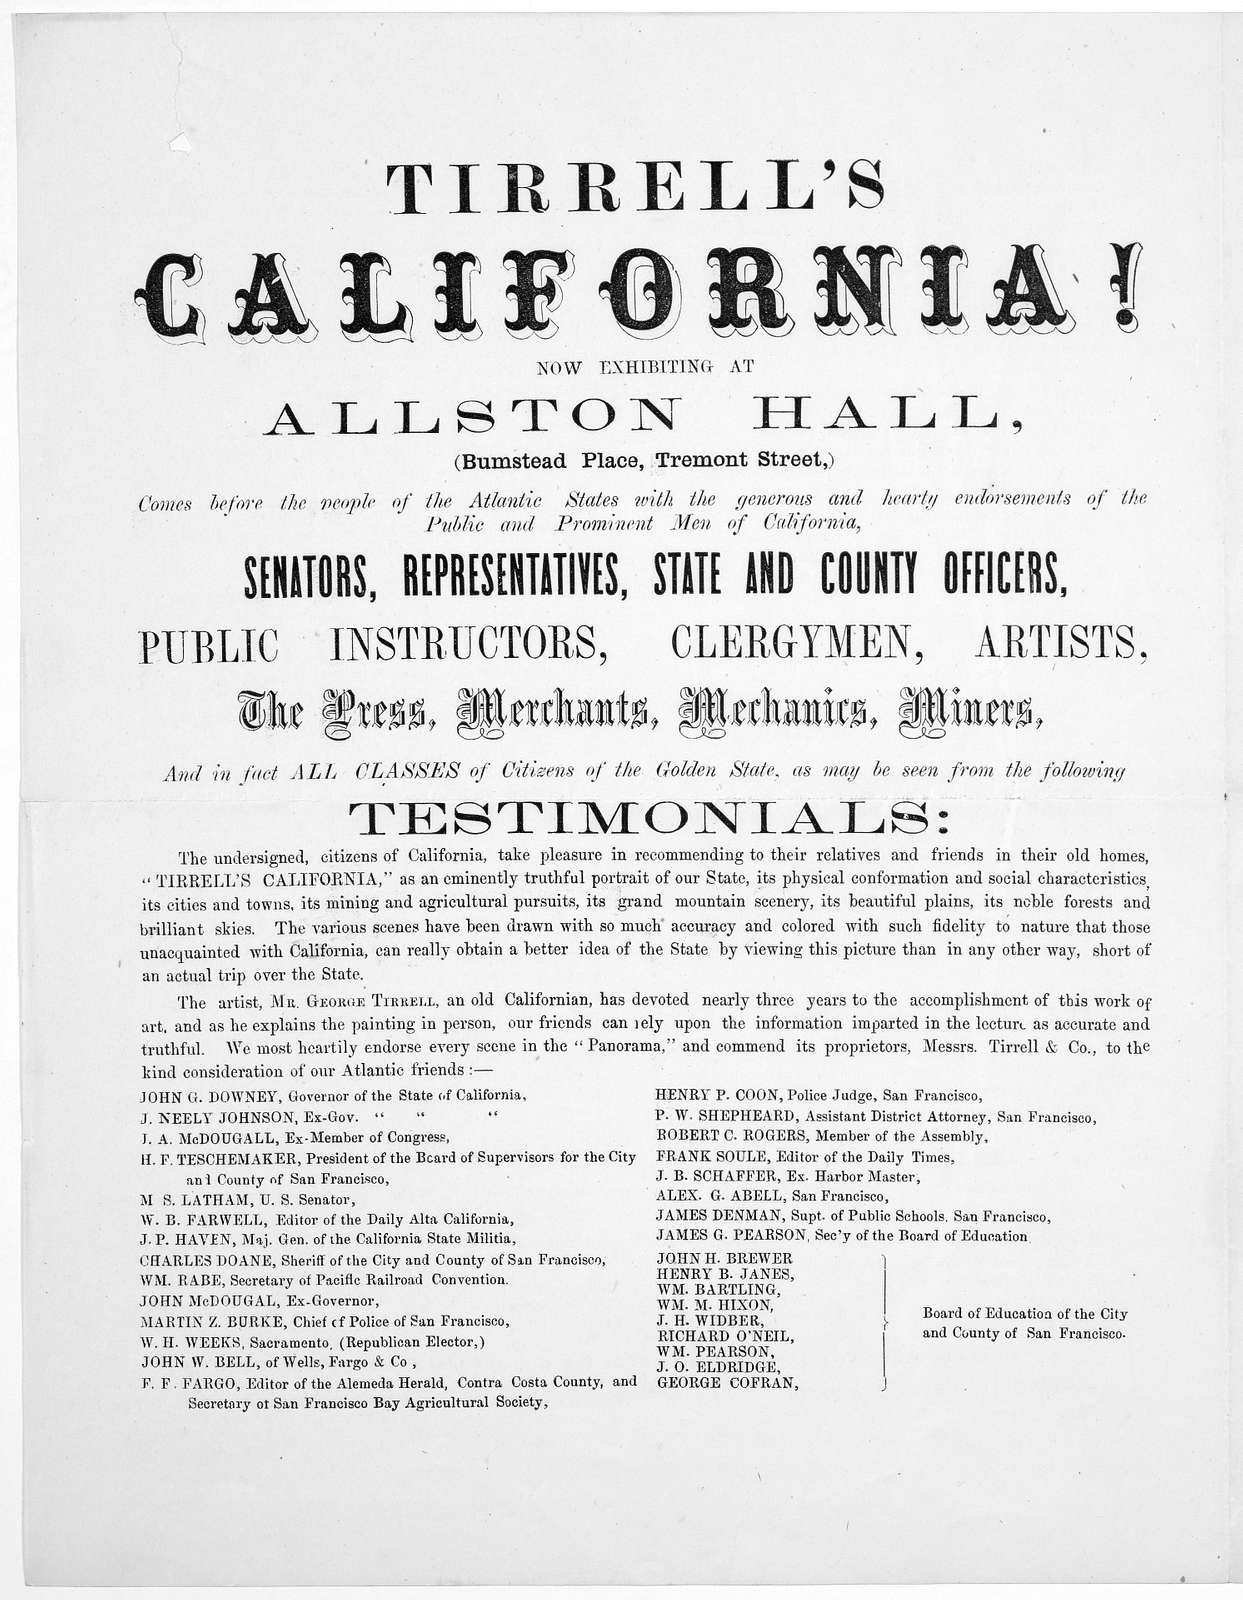 Tirrell's California! now exhibiting at Allston Hall, (Bumstead Place, Tremont Street,) comes before the people of the Atlantic States with the generous and hearty endorsements of the public and prominent men of California ... [Boston n. d.].